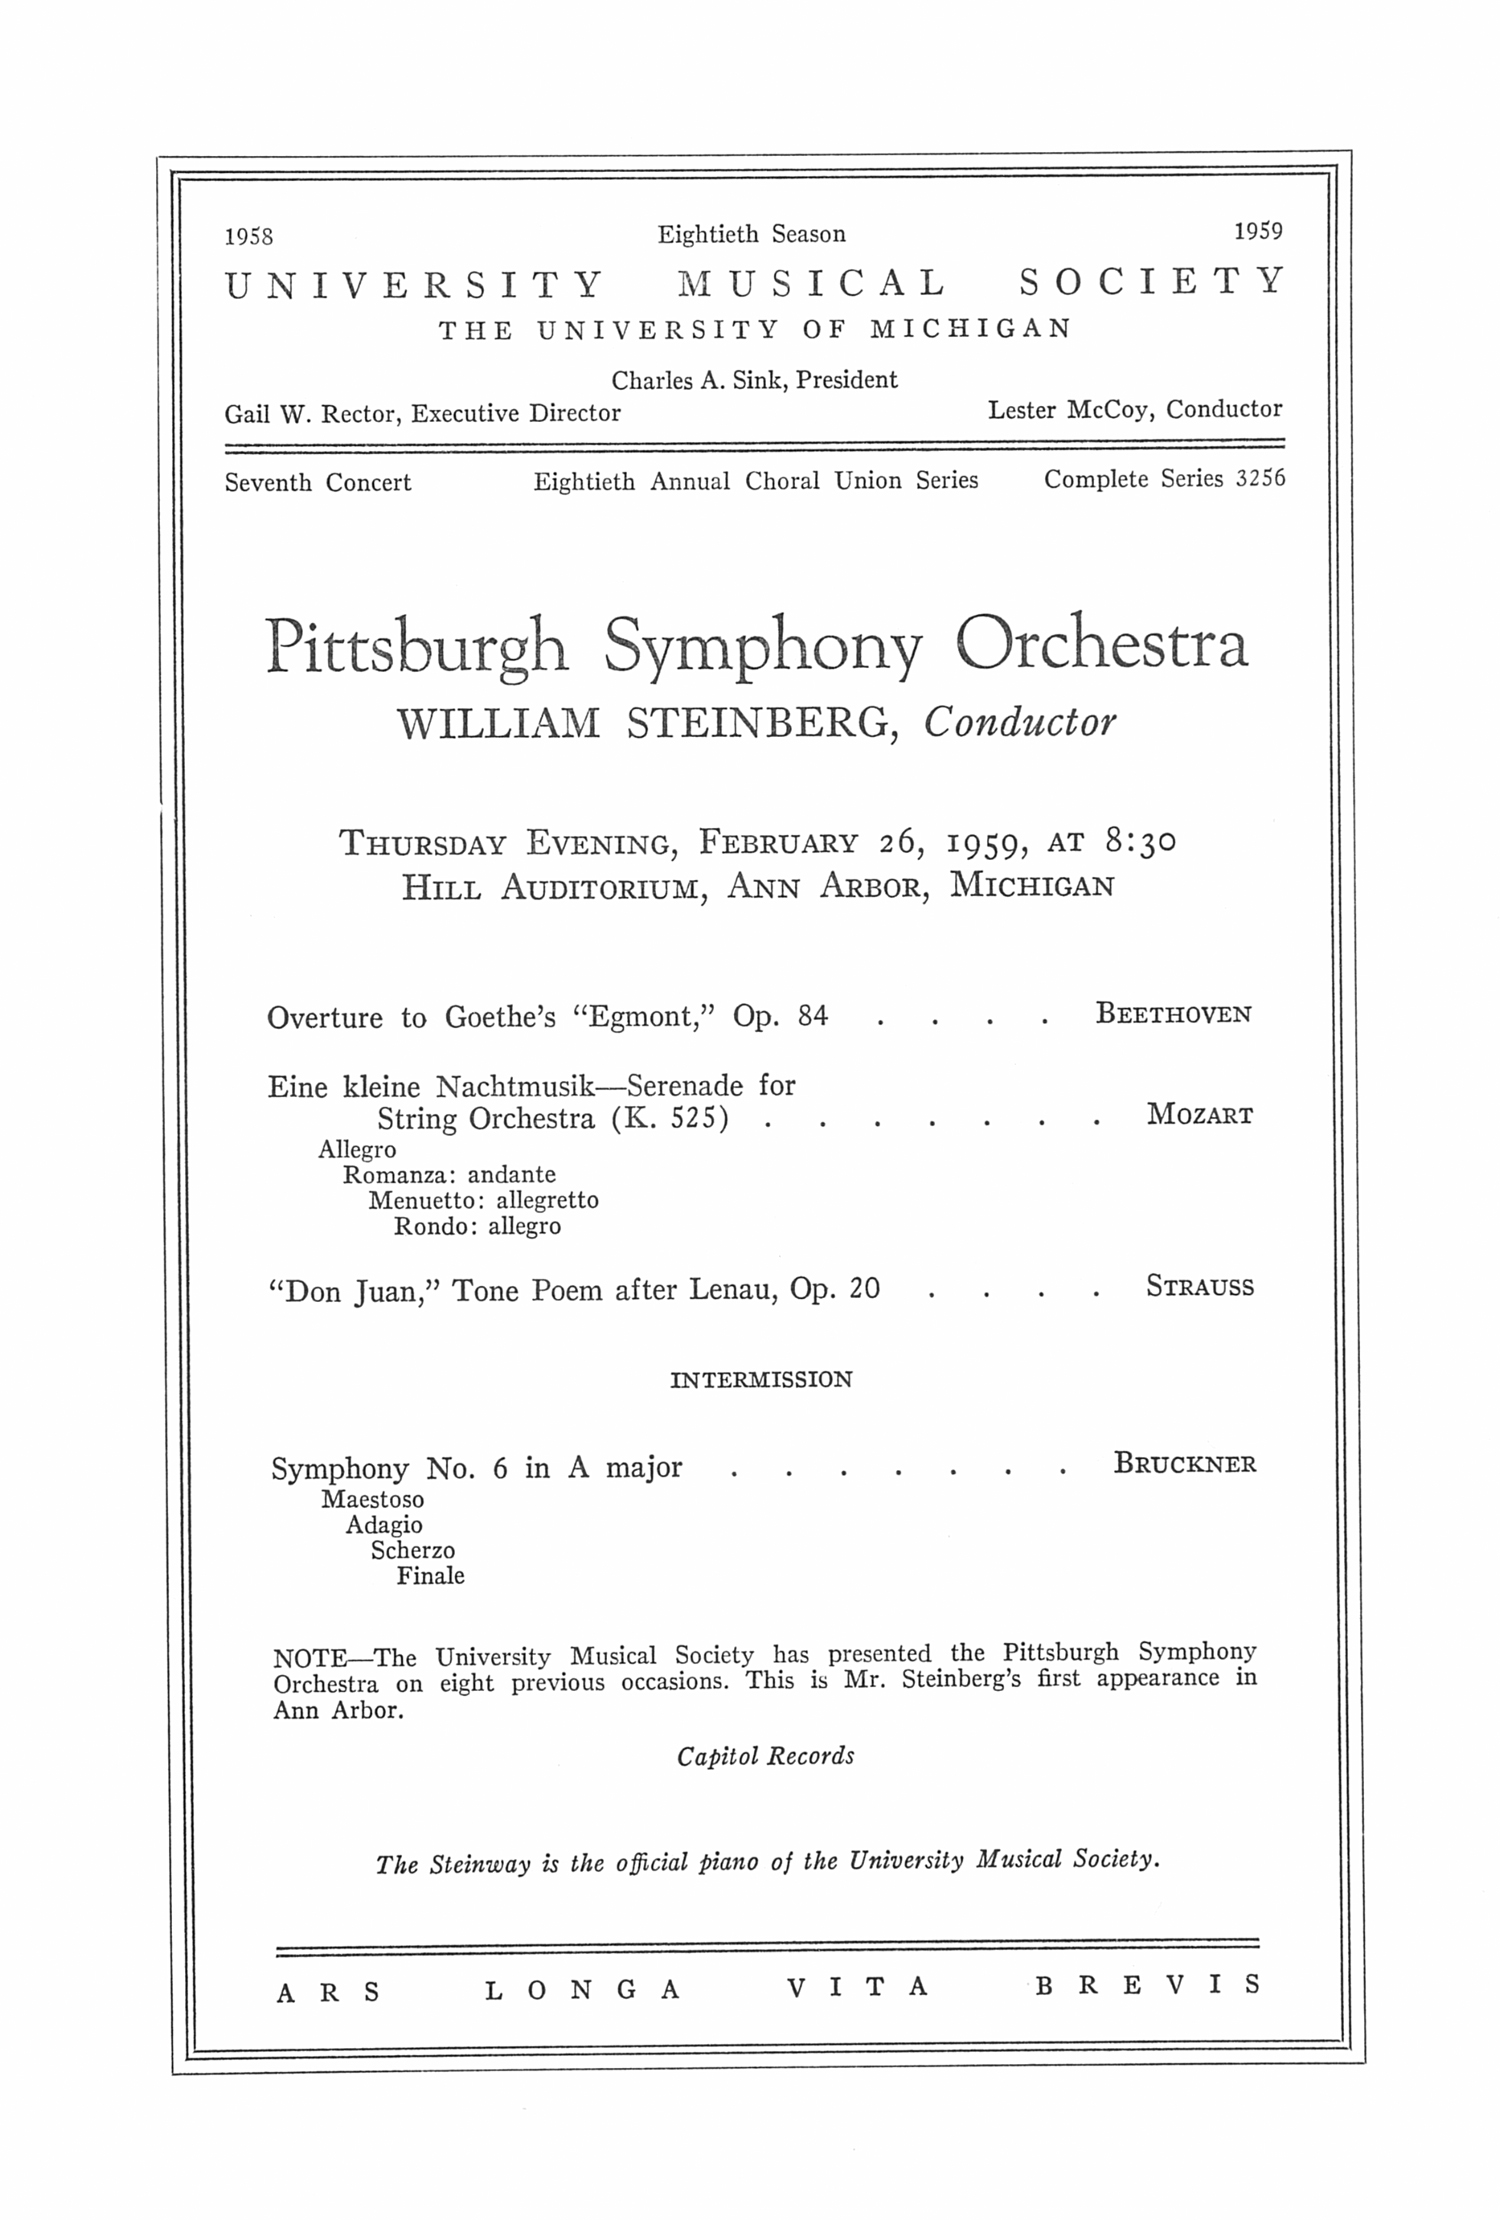 UMS Concert Program, February 26, 1959: Pittsburgh Symphony Orchestra --  image